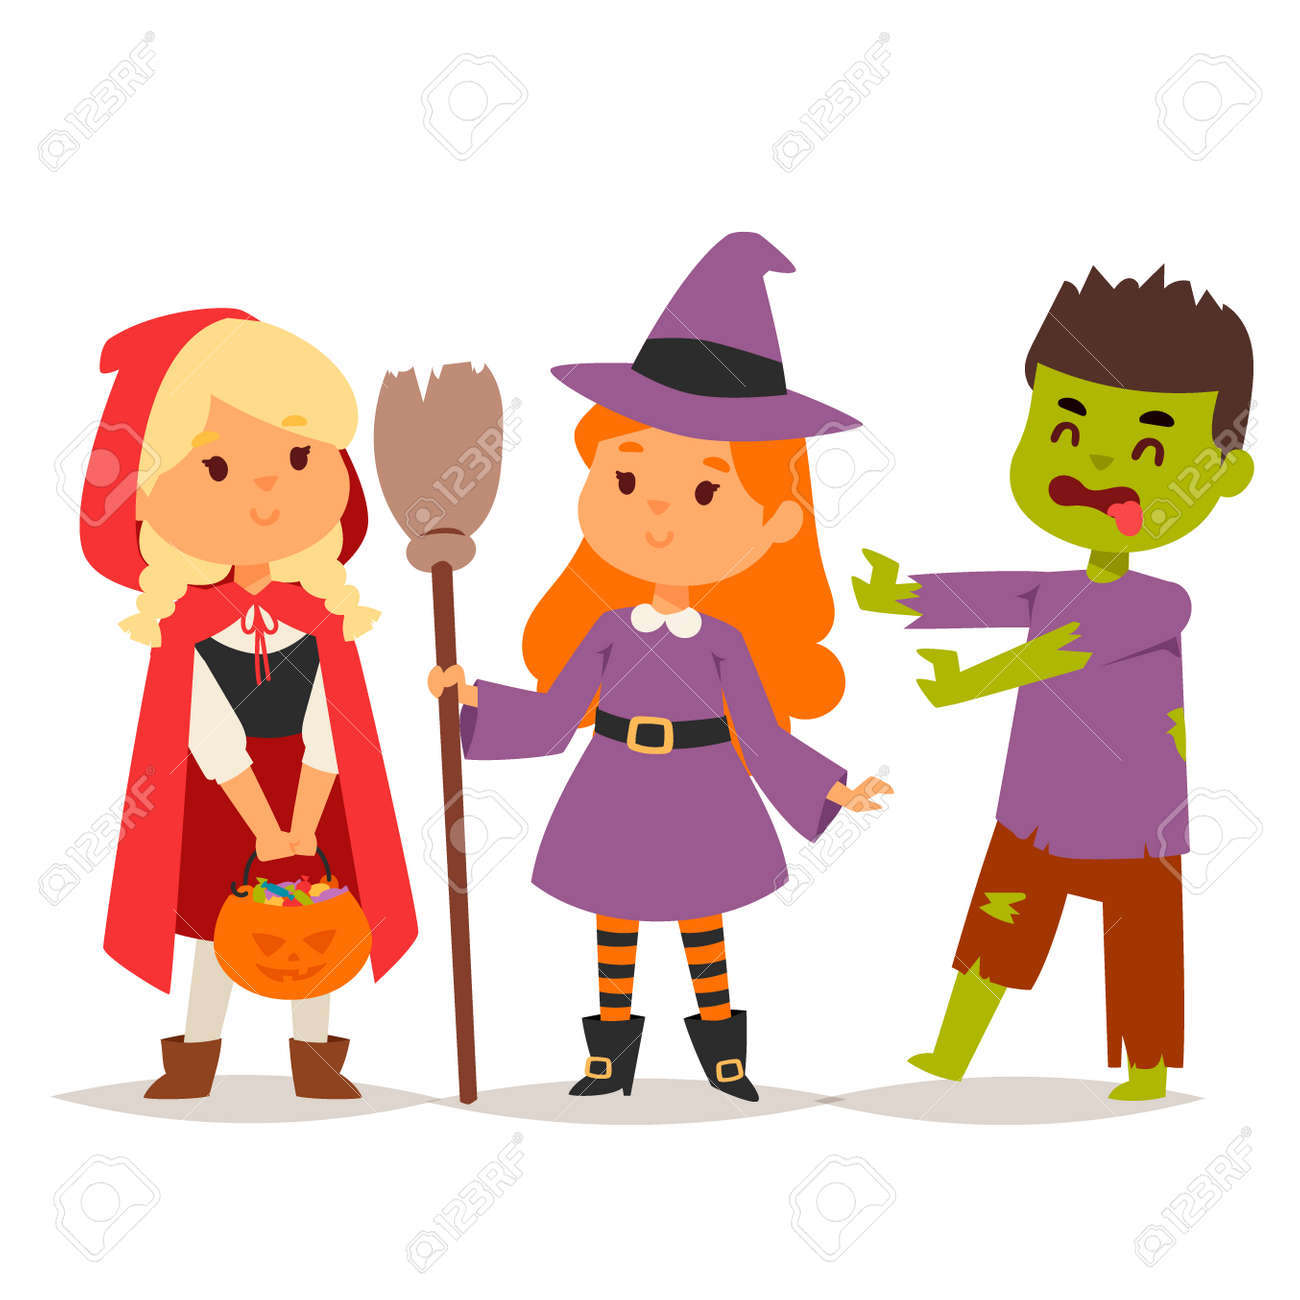 Cute Kids Wearing Halloween Costumes Vector Little People Isolated